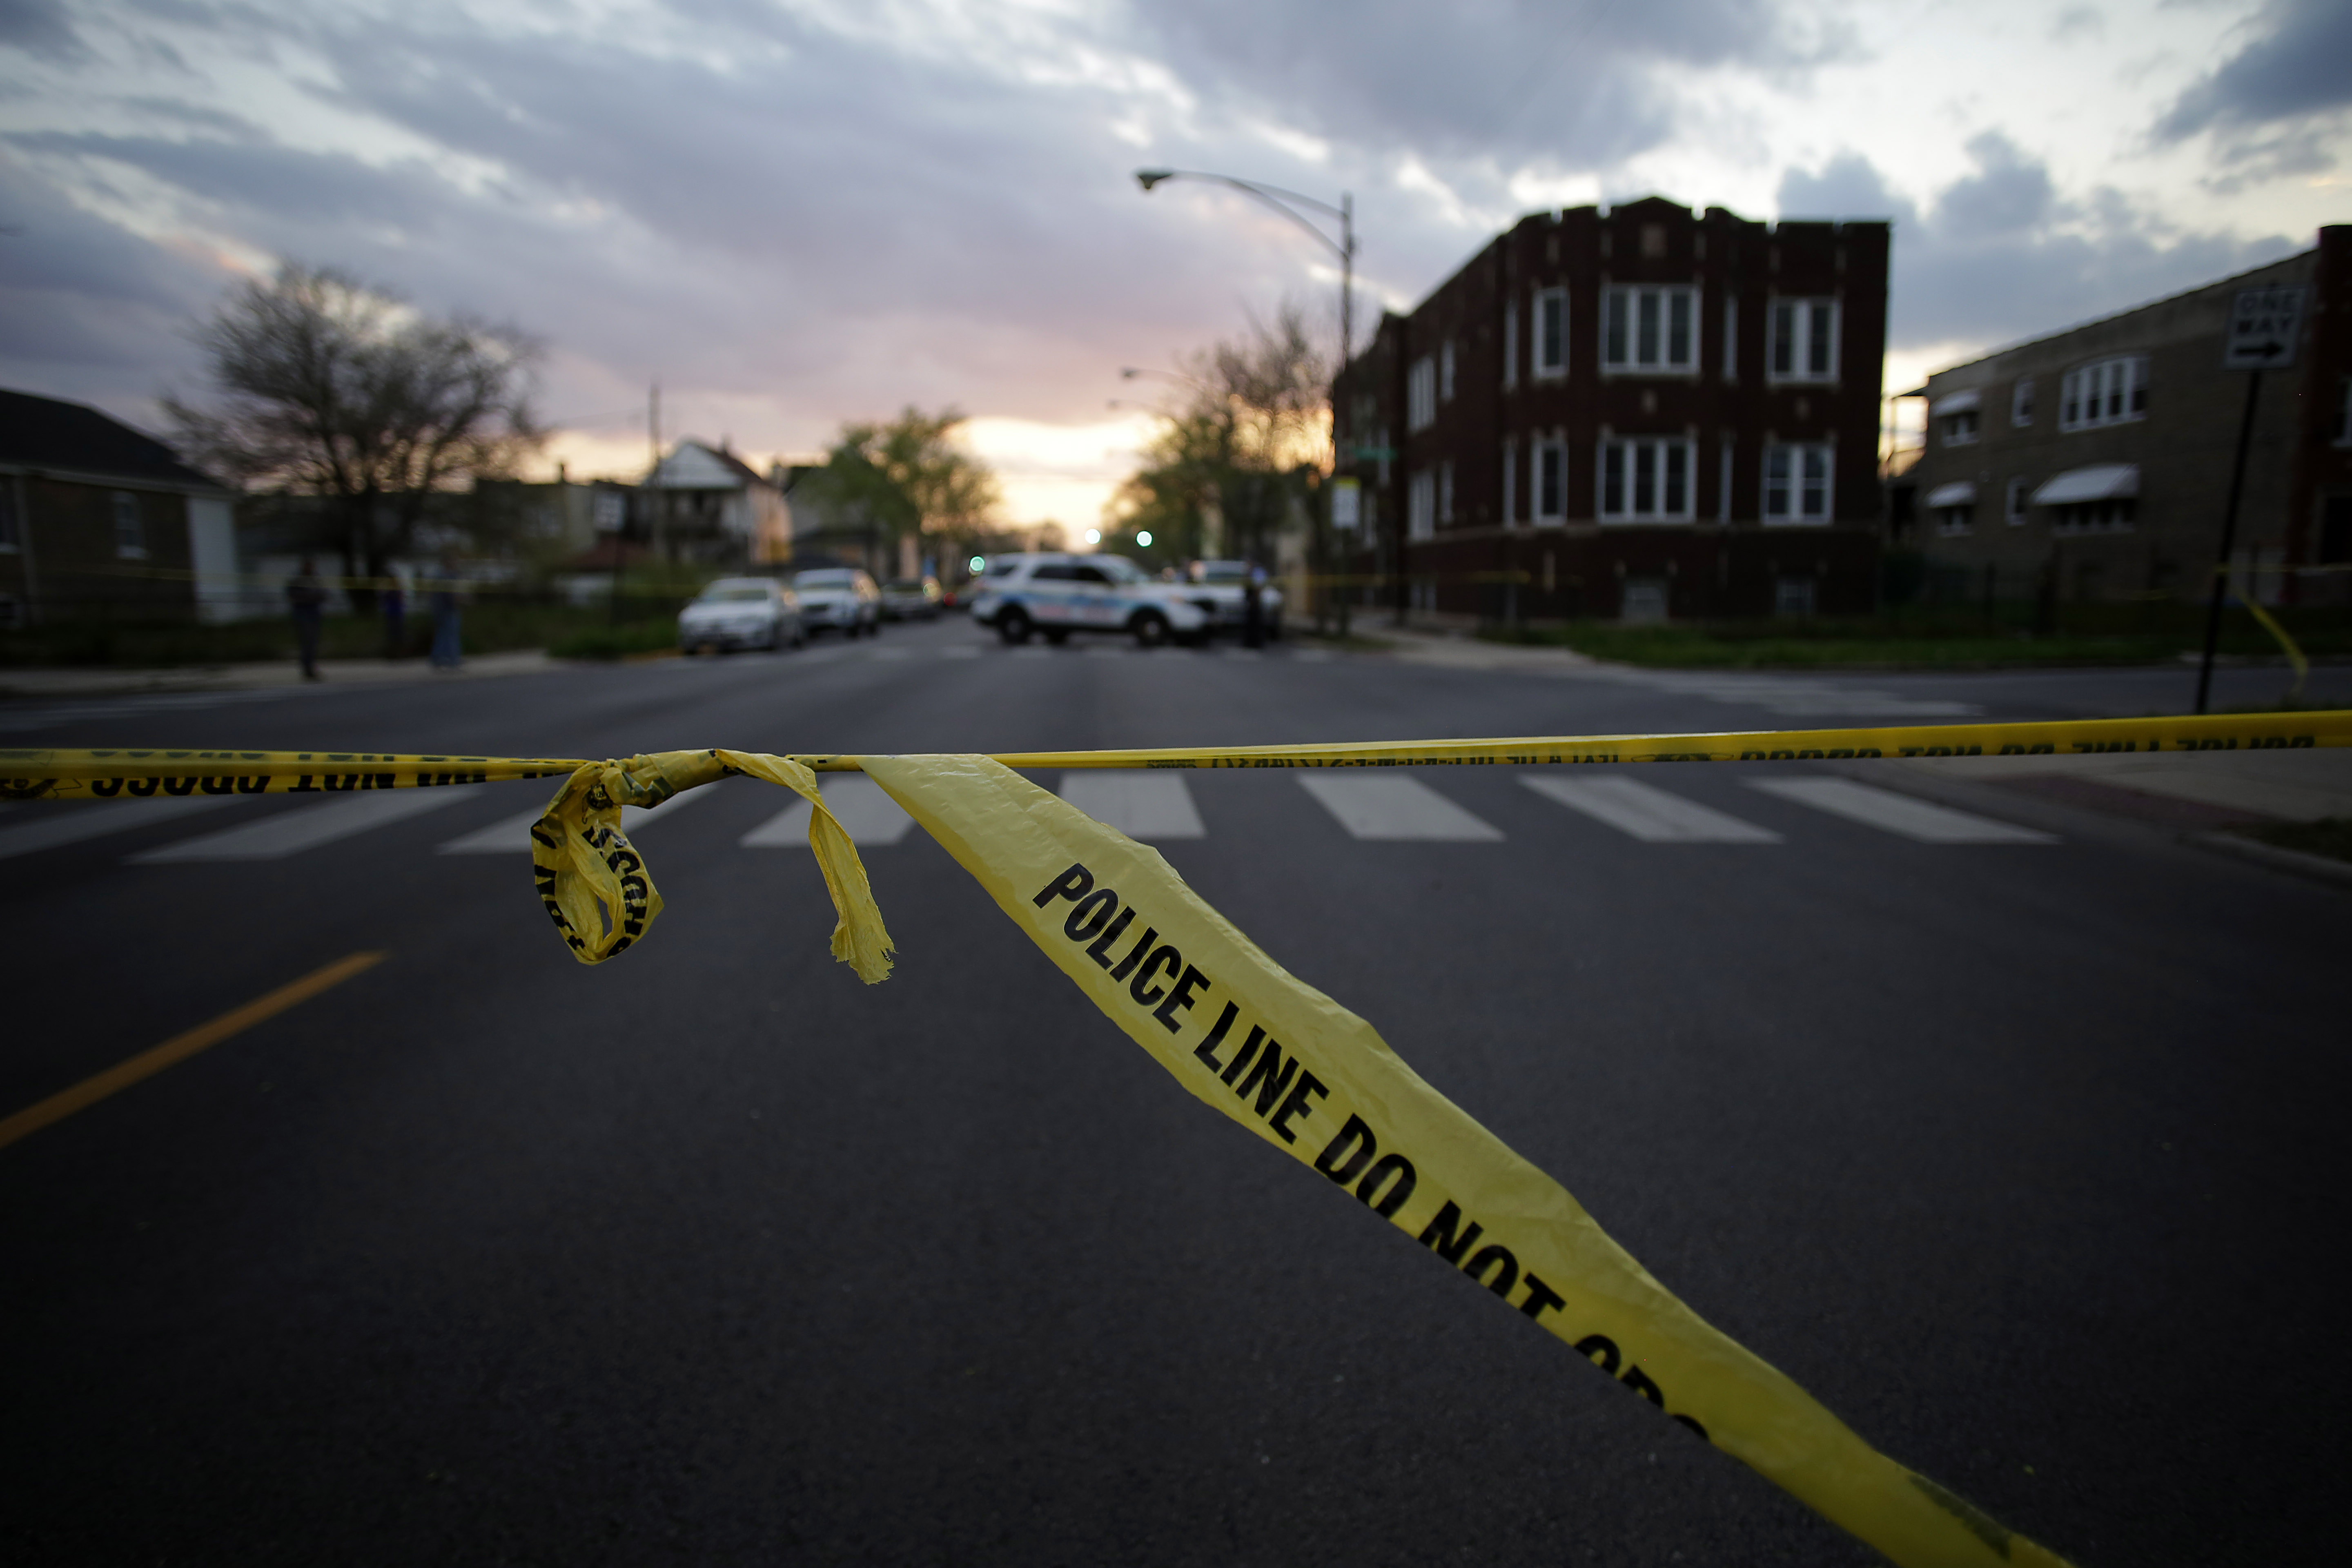 Gun Violence Continues To Plague Chicago, Over 1,000 Shootings For Year To Date